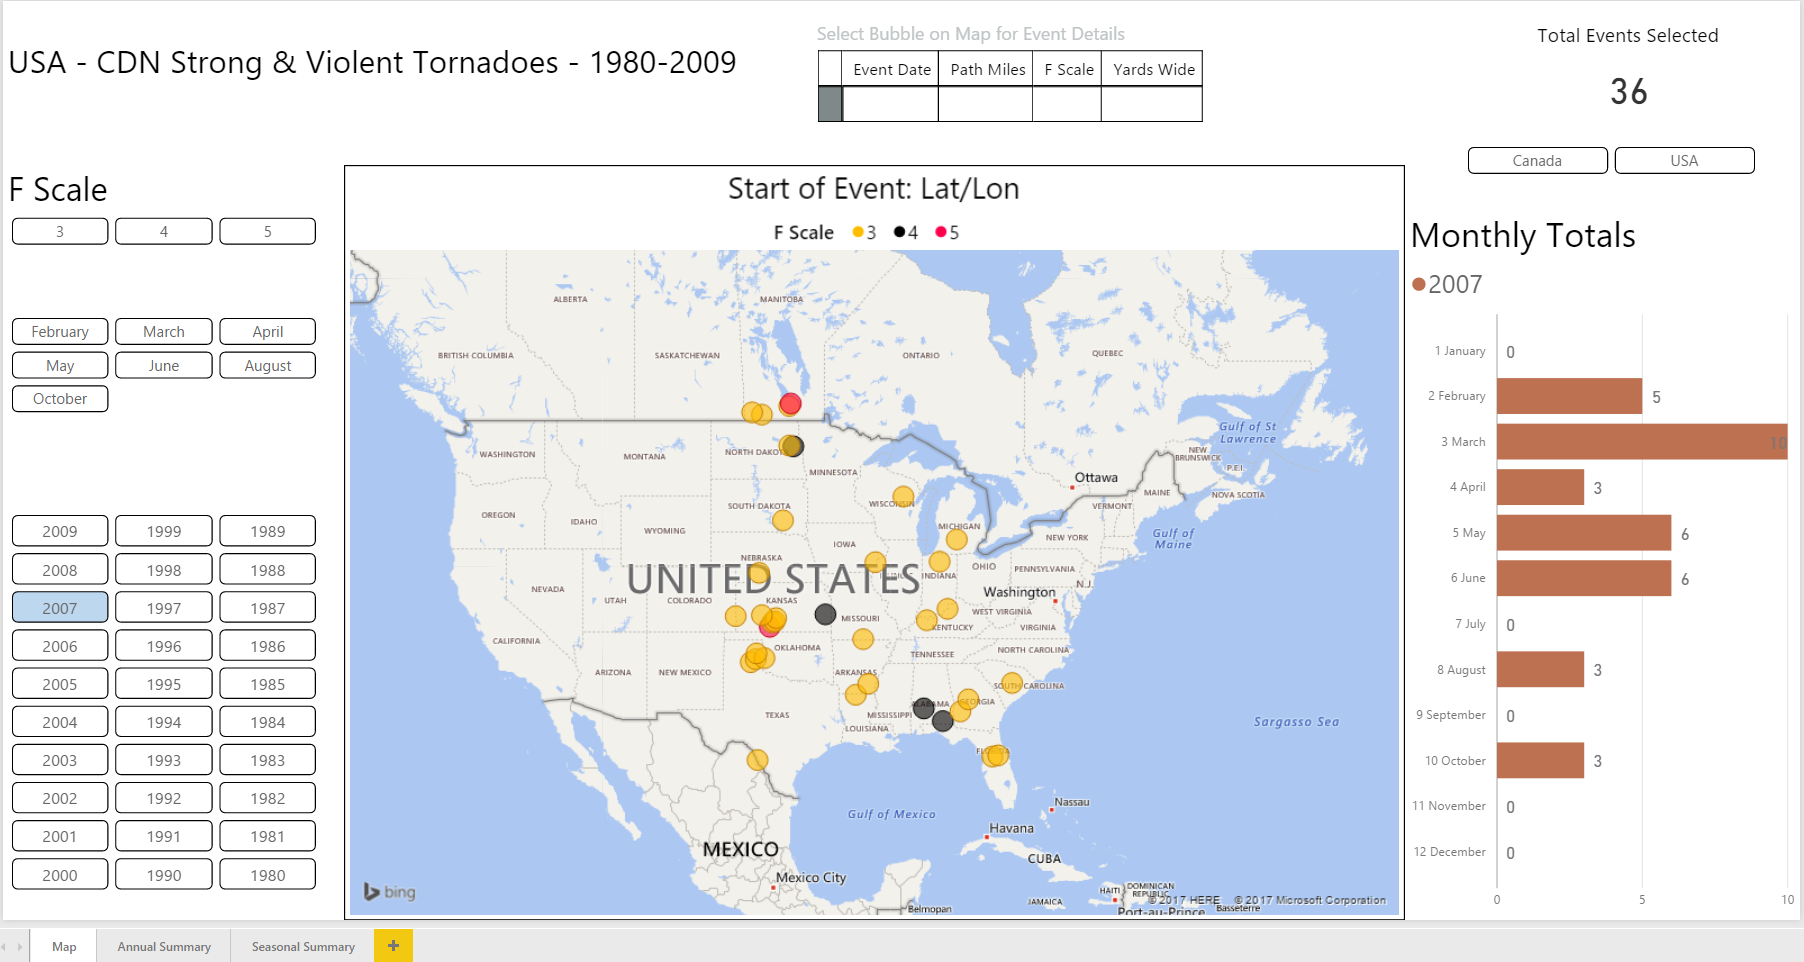 US and Canadian Strong & Violent Tornadoes, 1980-2009